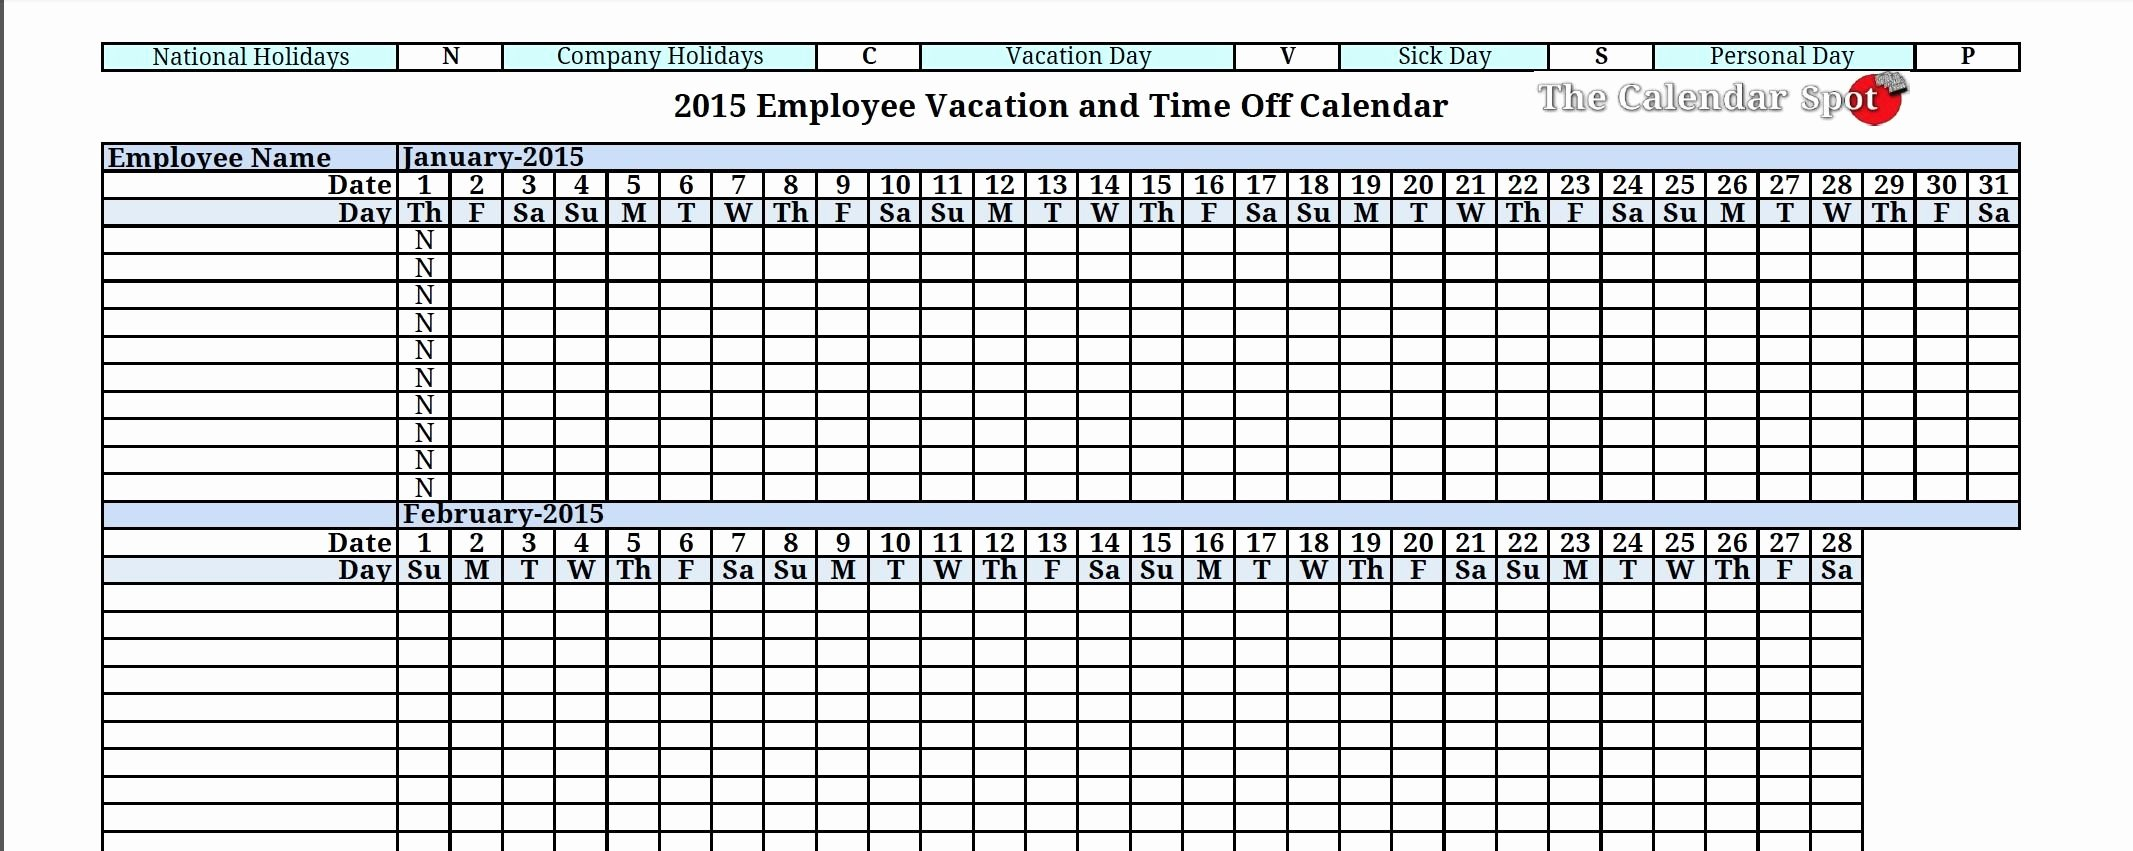 Employee Holiday Schedule Template Beautiful 2015 Employee Vacation Absence Tracking Calendar